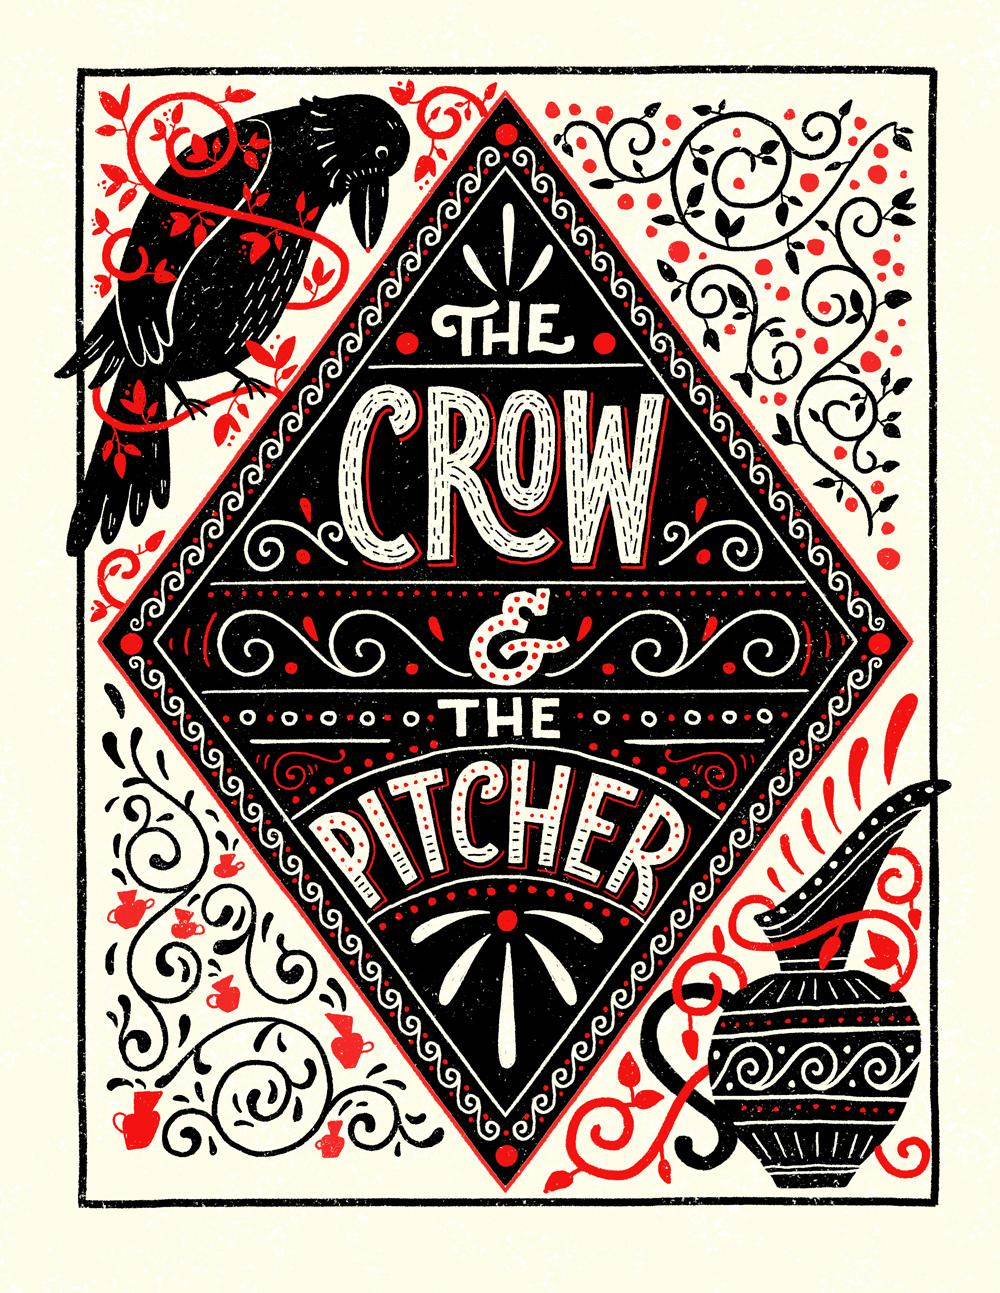 This hand lettering incorporates illustration and ornamentation to create a more varied style.